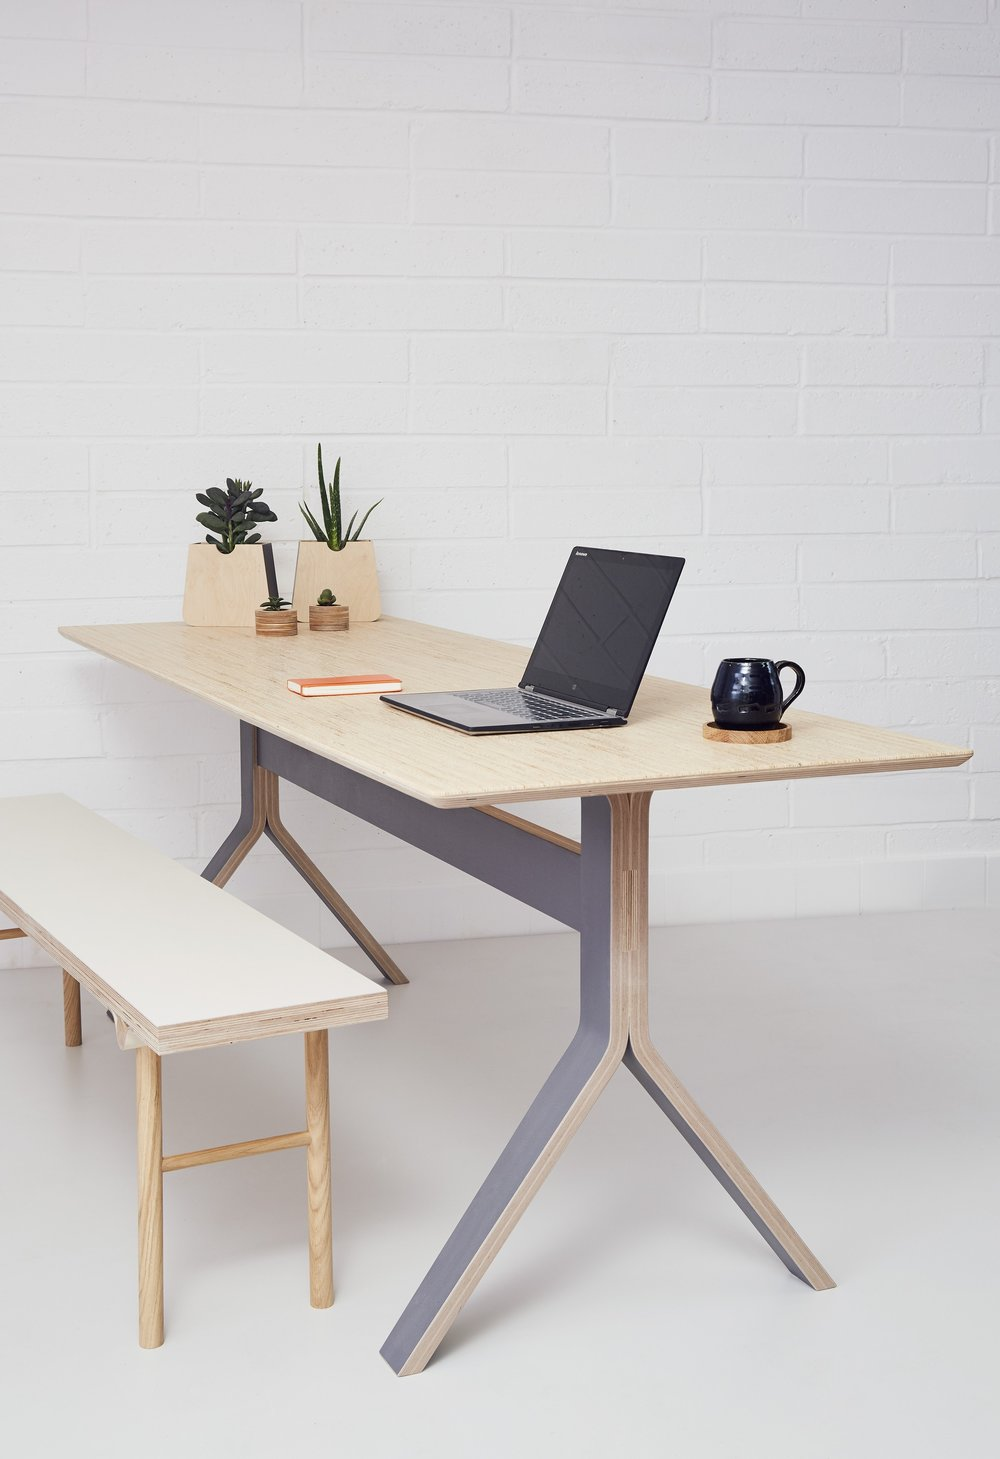 Lozi's minimal plywood Sea table, used as a co working desk space